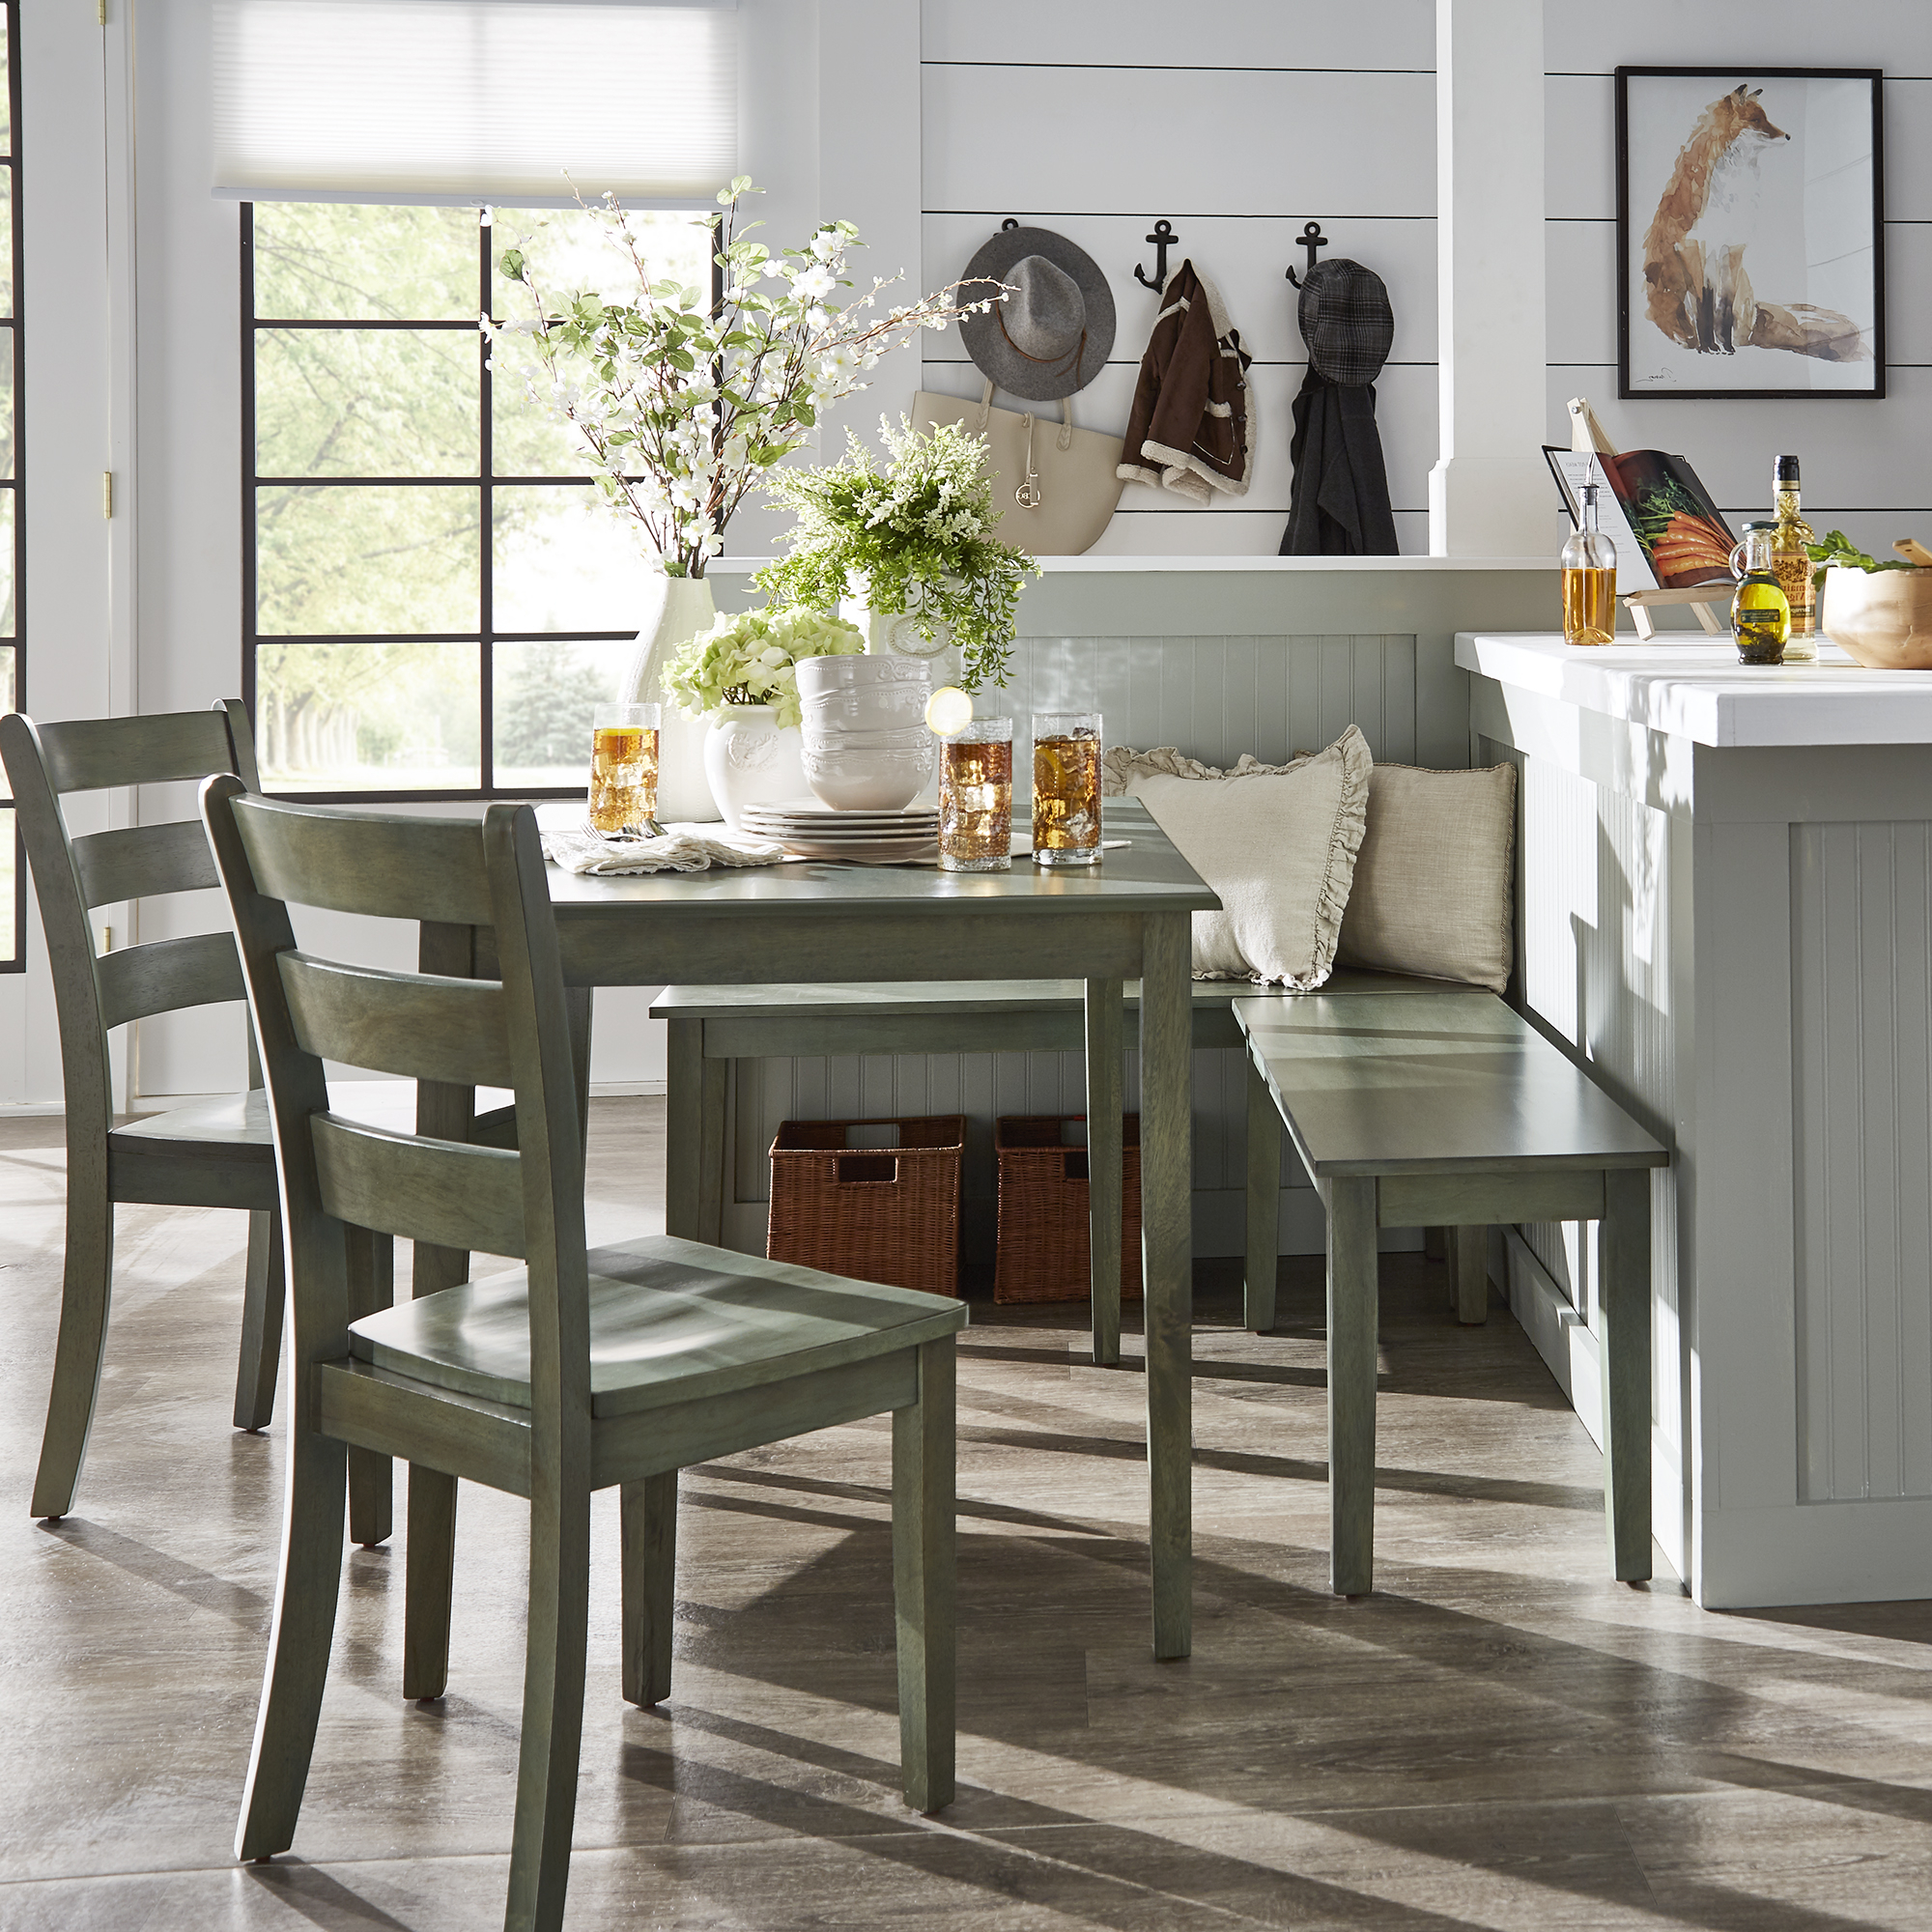 Most Current 5 Piece Breakfast Nook Dining Sets Intended For Weston Home Lexington 5 Piece Breakfast Nook Dining Set, Rectangular (View 9 of 25)